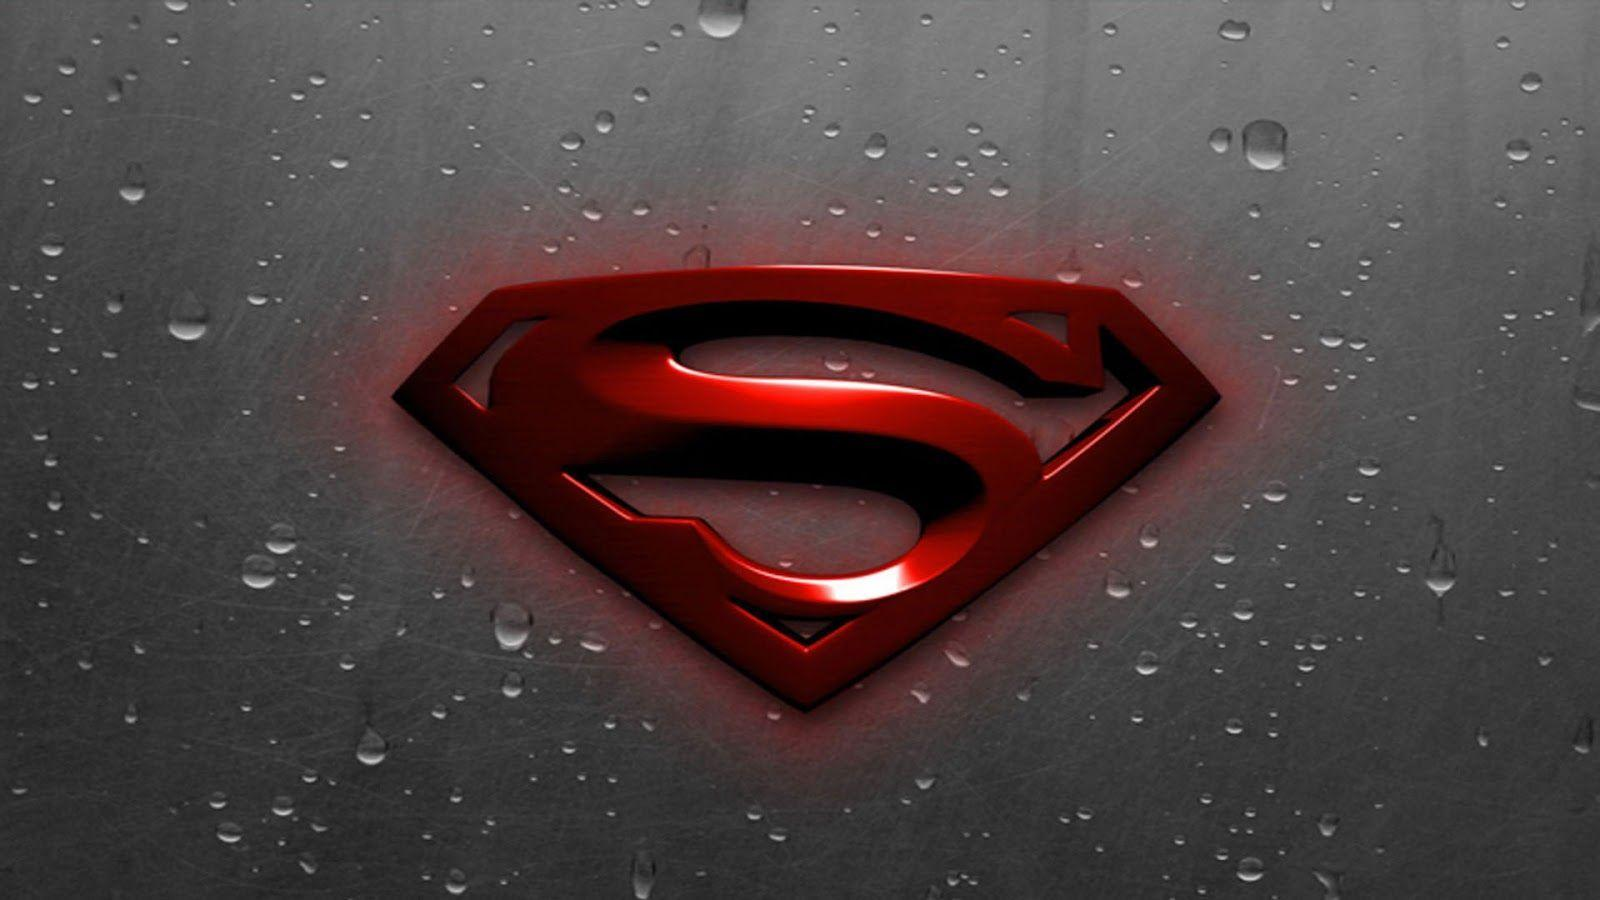 Superman Logo Wallpaper | Maceme Wallpaper